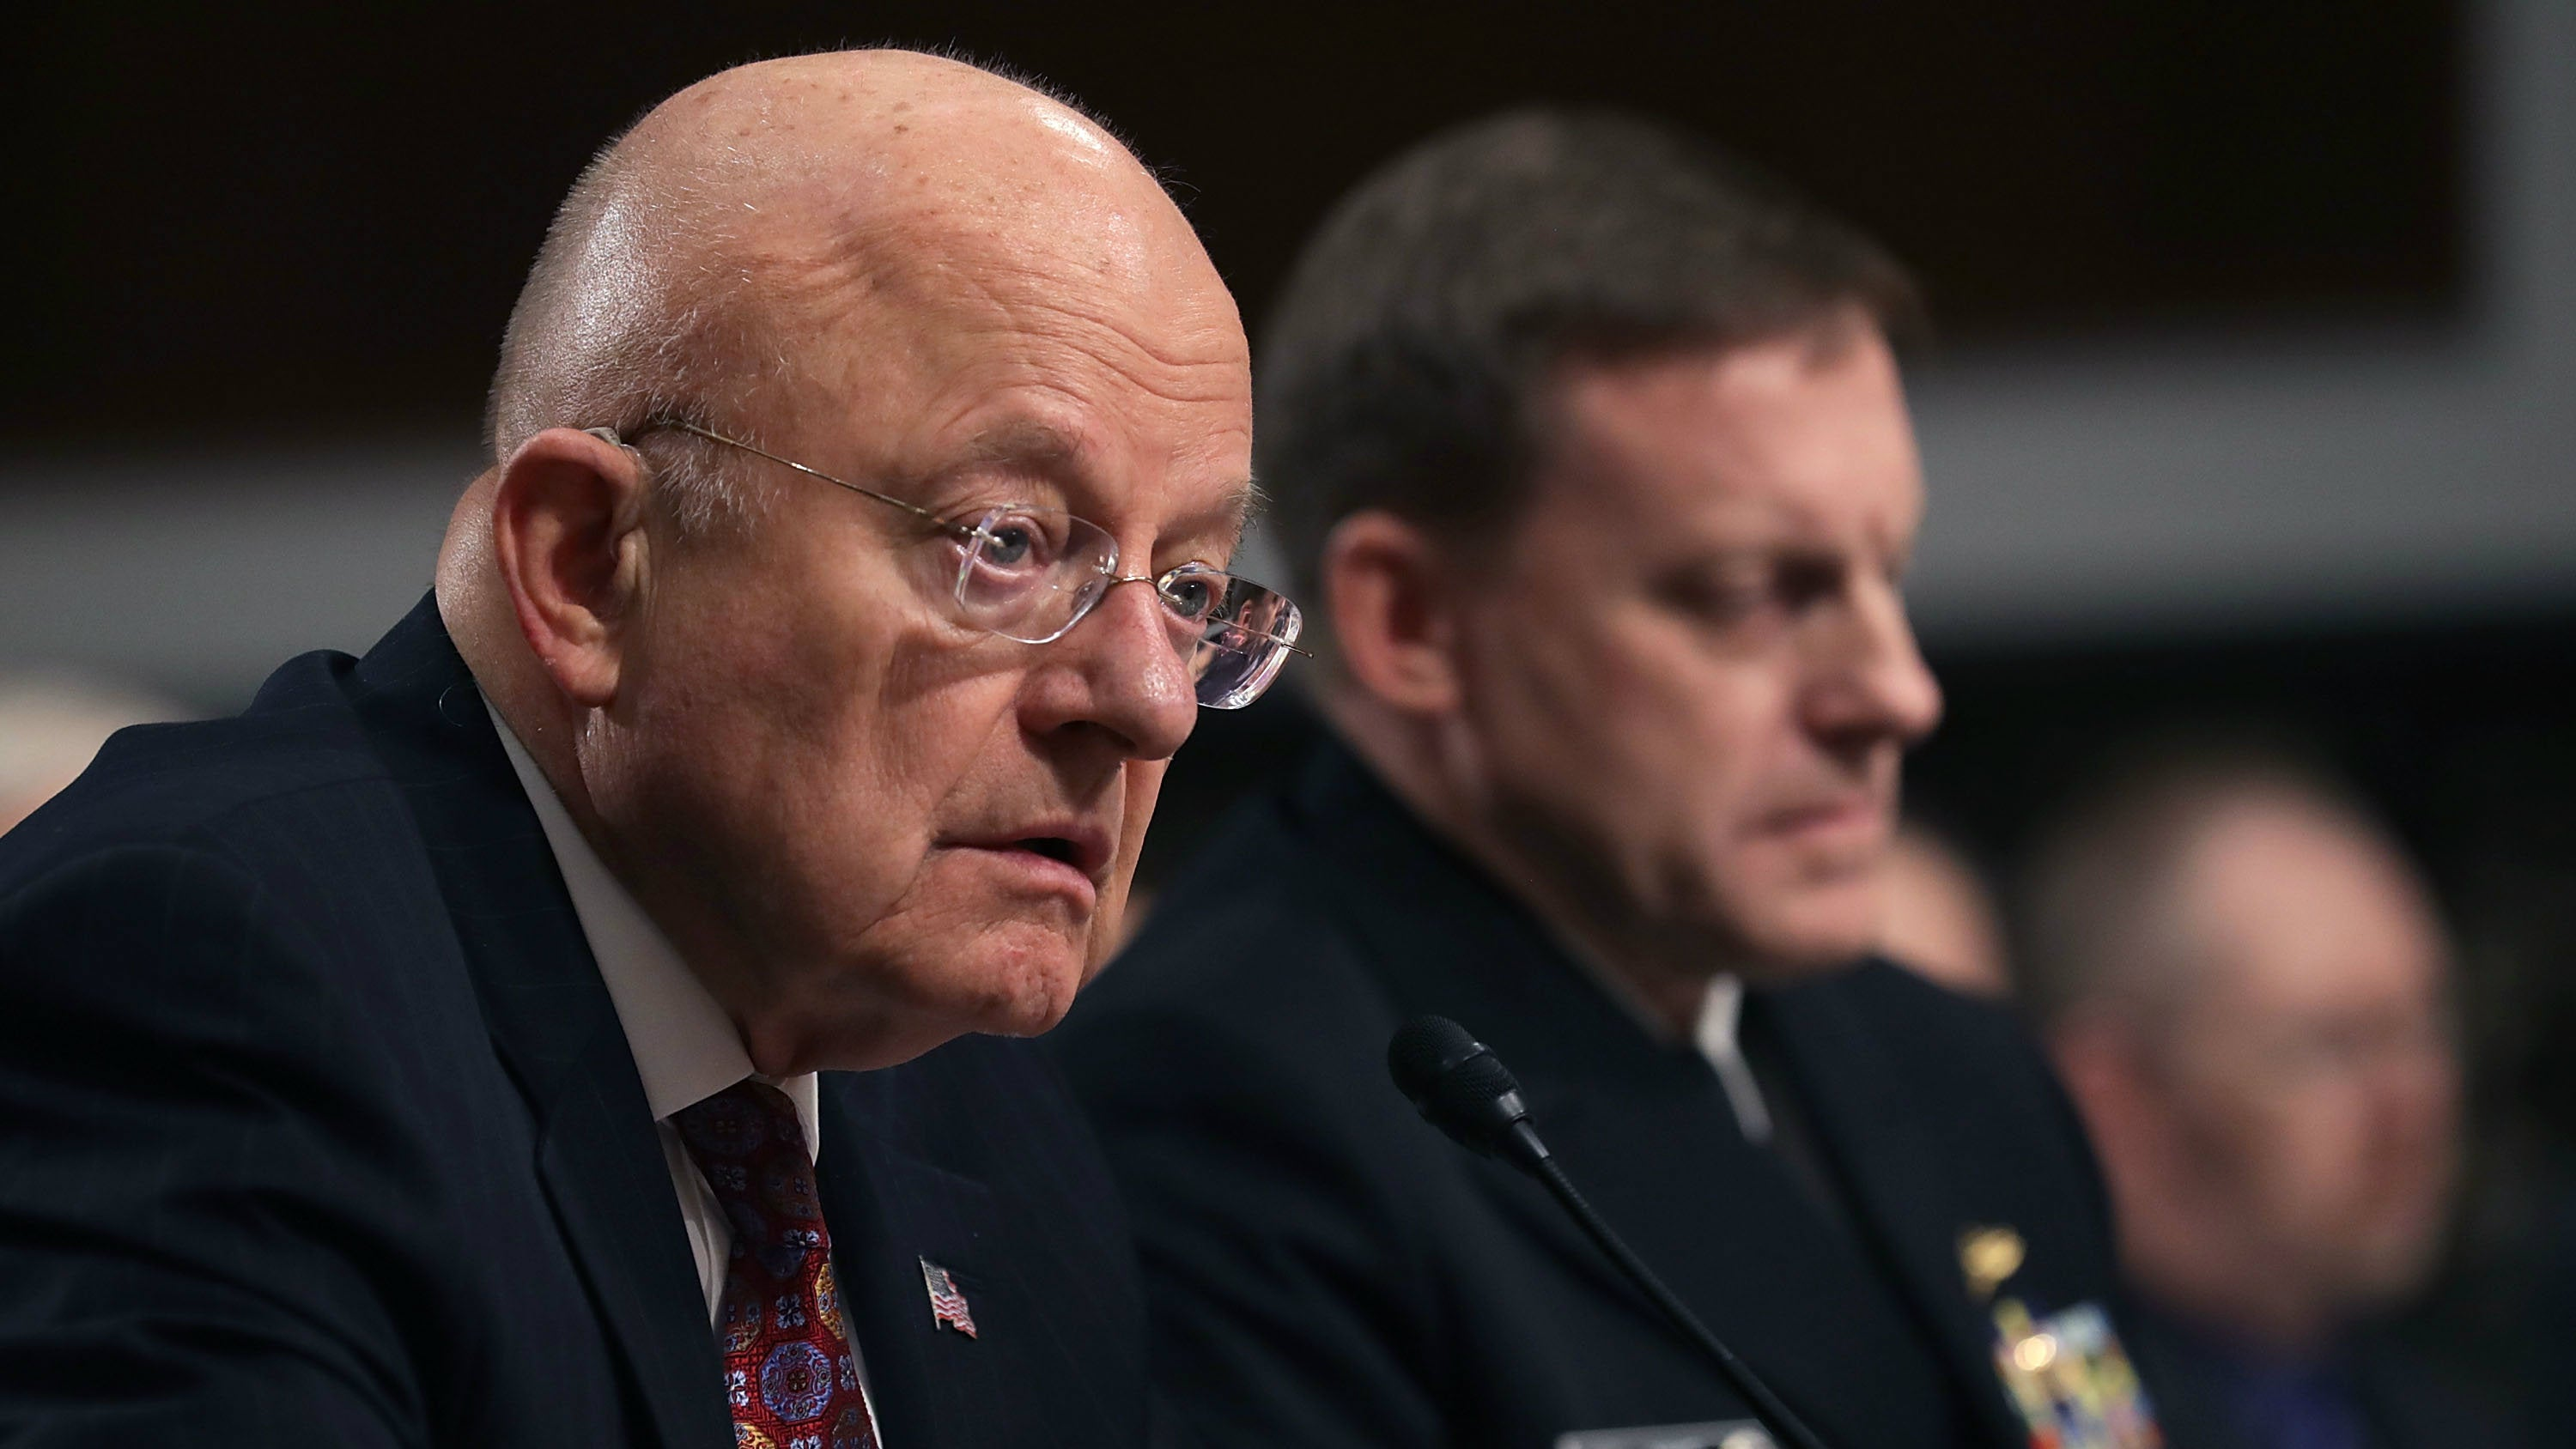 Way More People Will Now Have Access To The NSA's Raw, Unfiltered Data